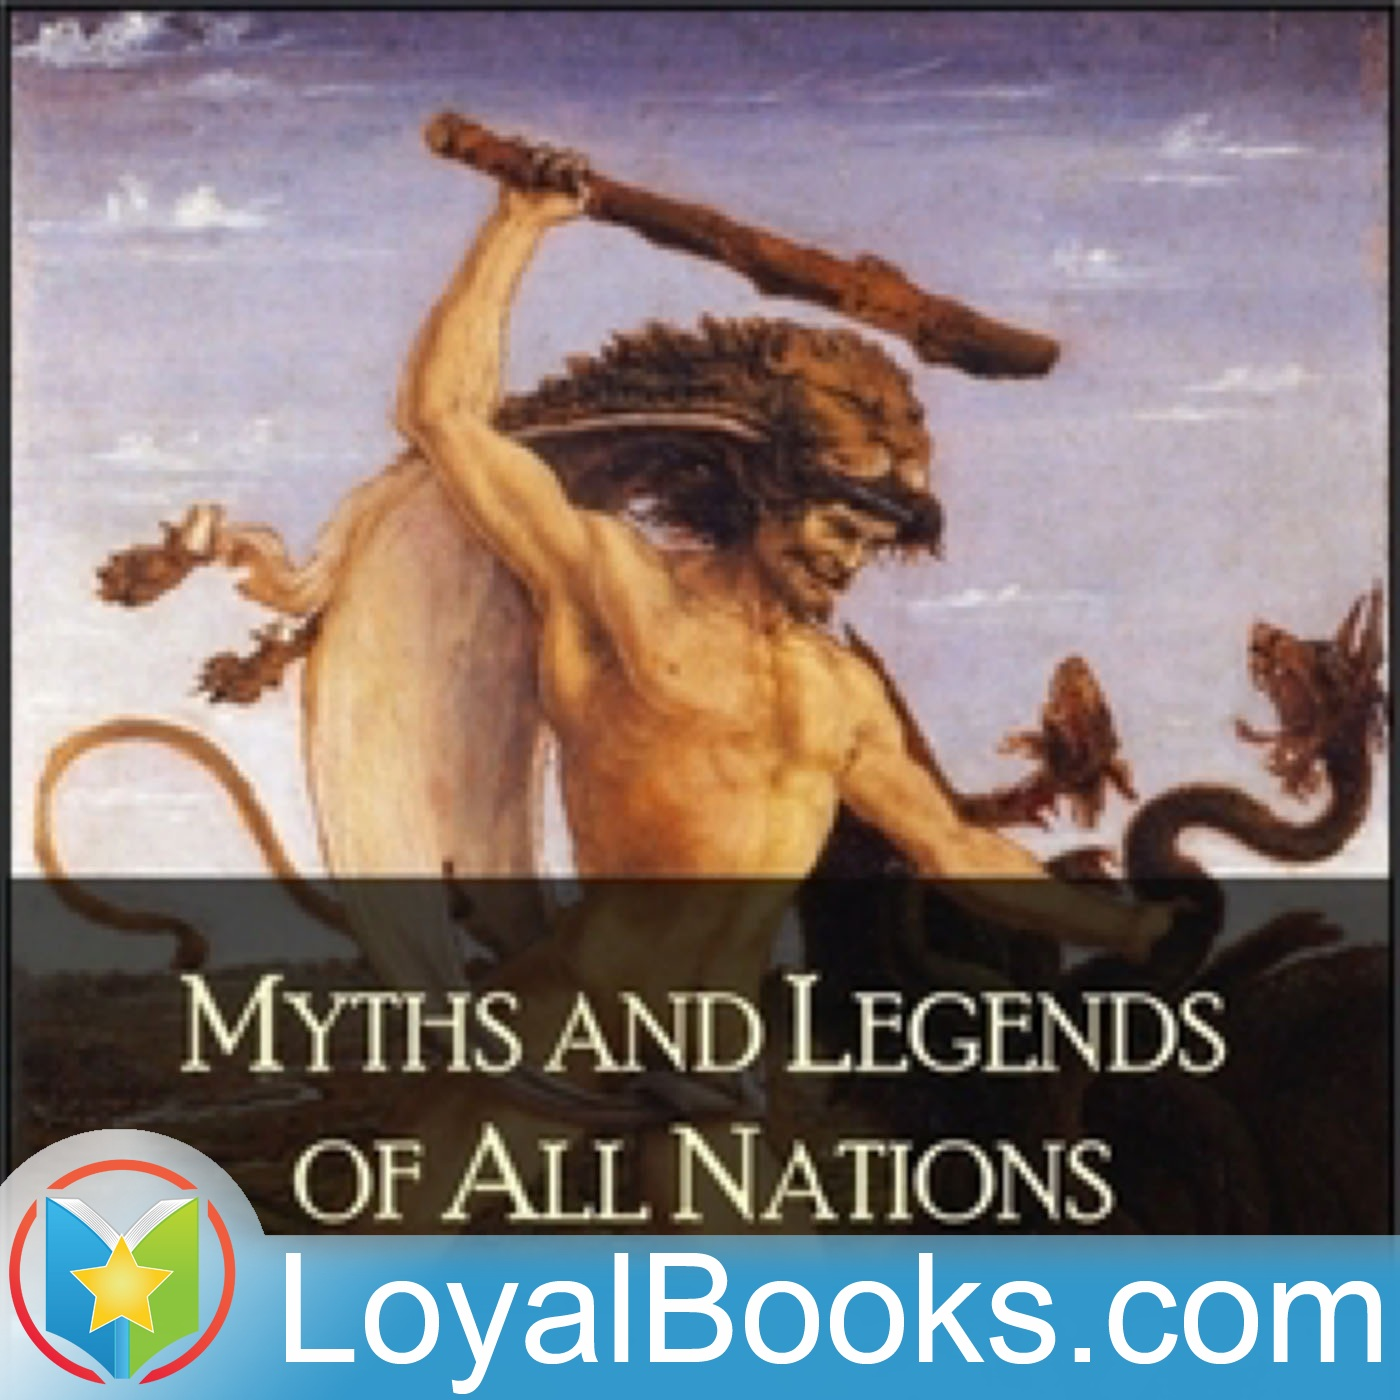 <![CDATA[Myths and Legends of All Nations by Logan Marshall]]>